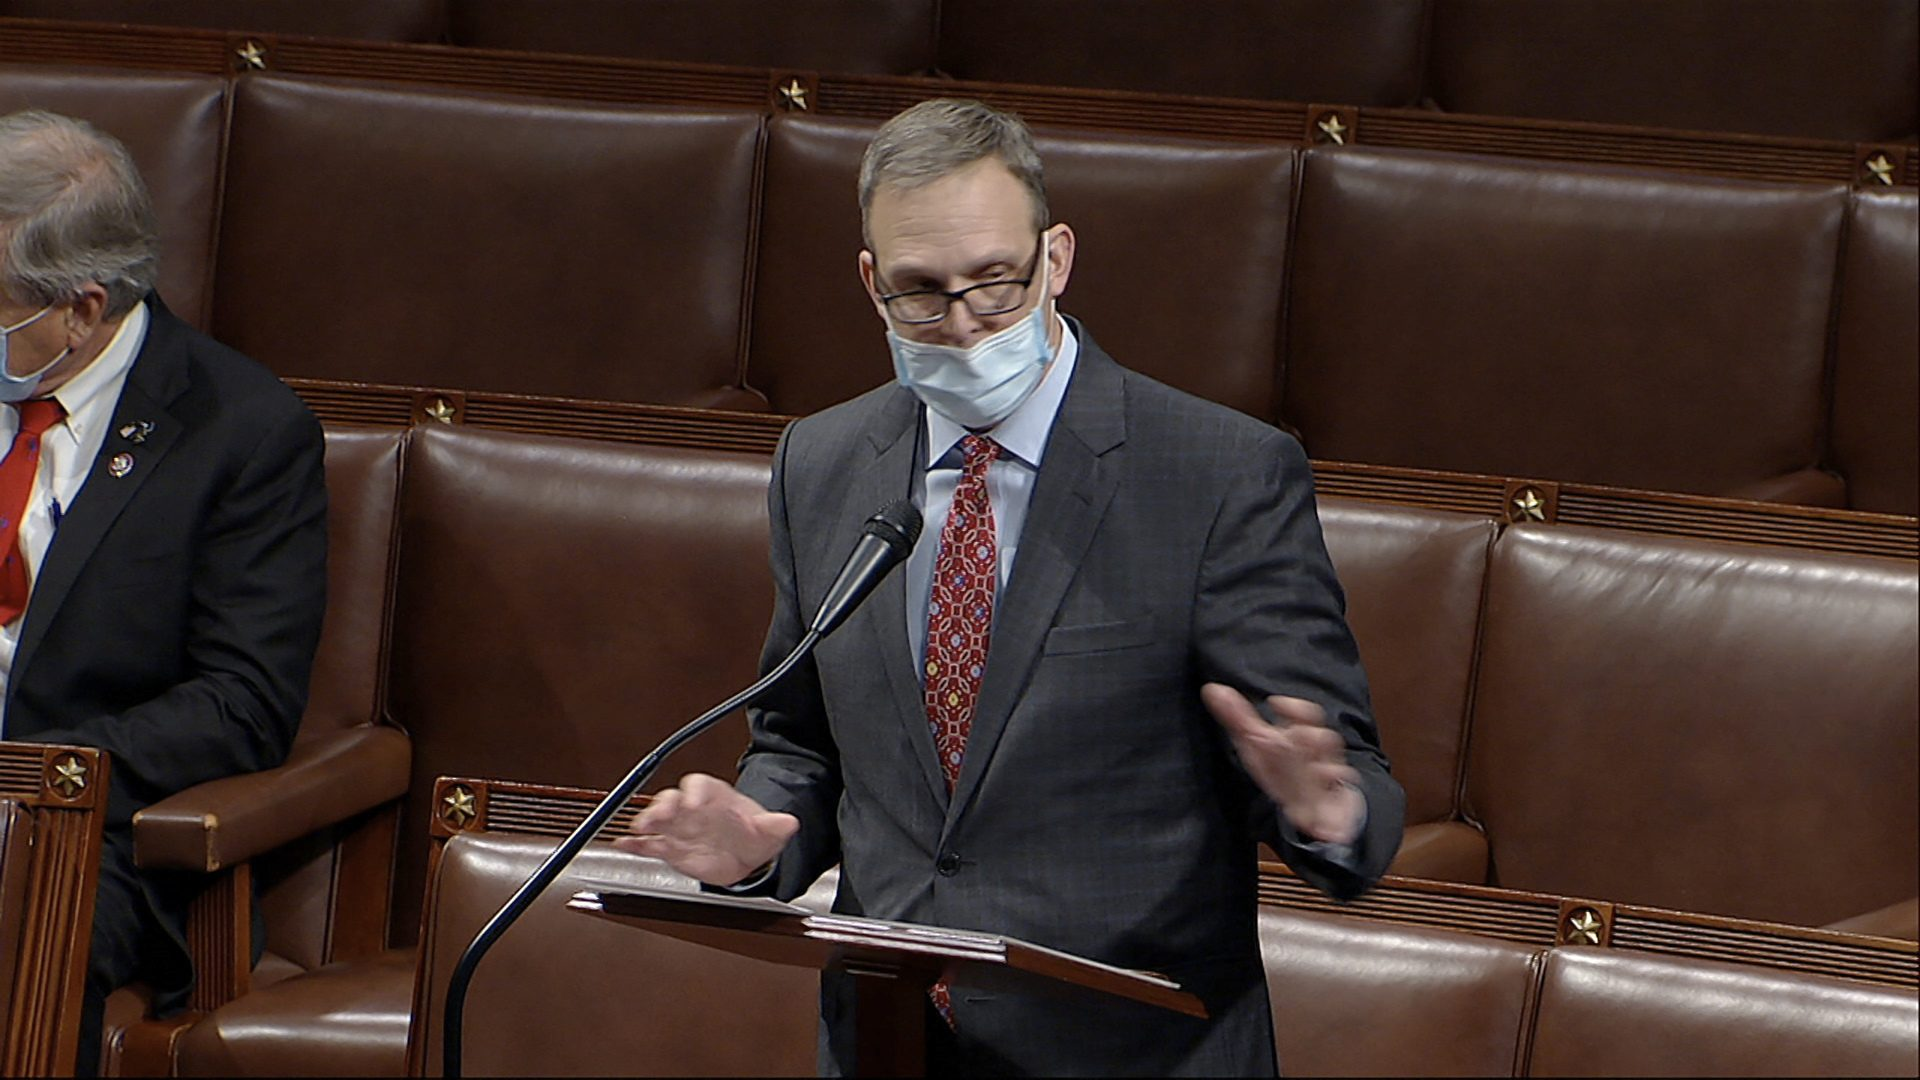 In this image from video, Rep. Scott Perry, R-Pa., speaks as the House debates the objection to confirm the Electoral College vote from Pennsylvania, at the U.S. Capitol early Thursday, Jan. 7, 2021.